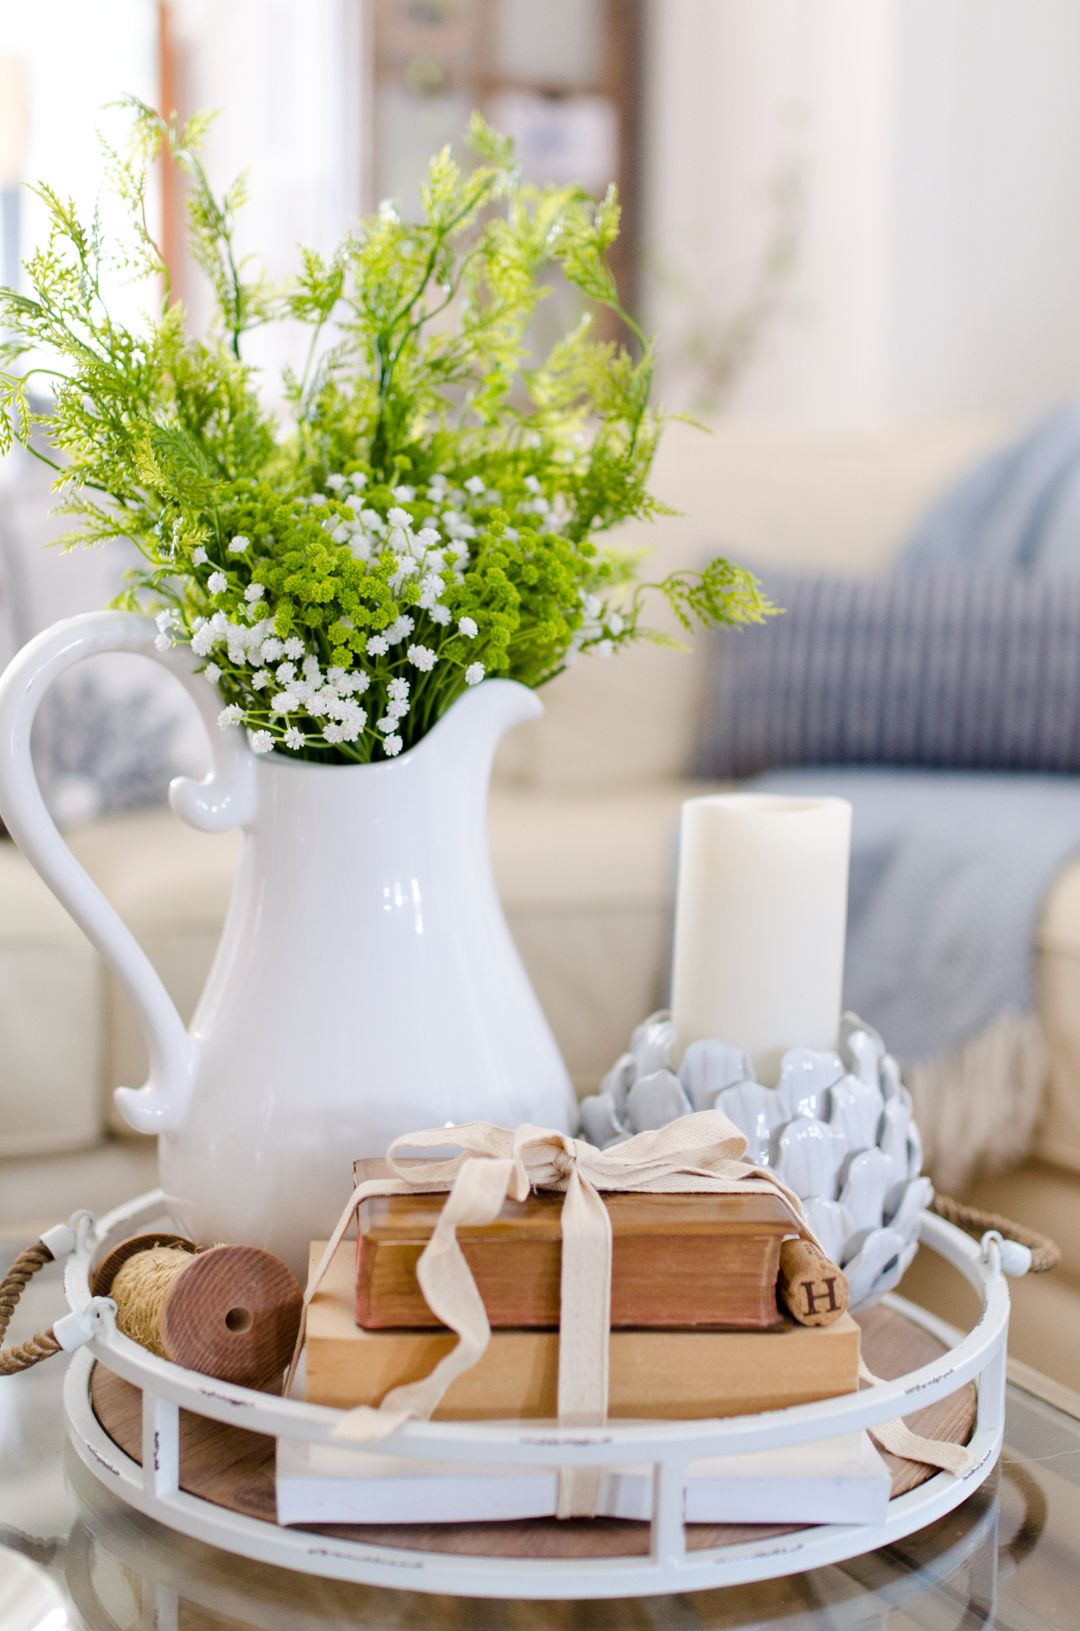 Instagram 2 Coffee Table Flowers In The White Pitcher And Vintage Books Tied With Ribb Coffe Table Decor Farmhouse Coffee Table Decor Coffee Table Centerpieces